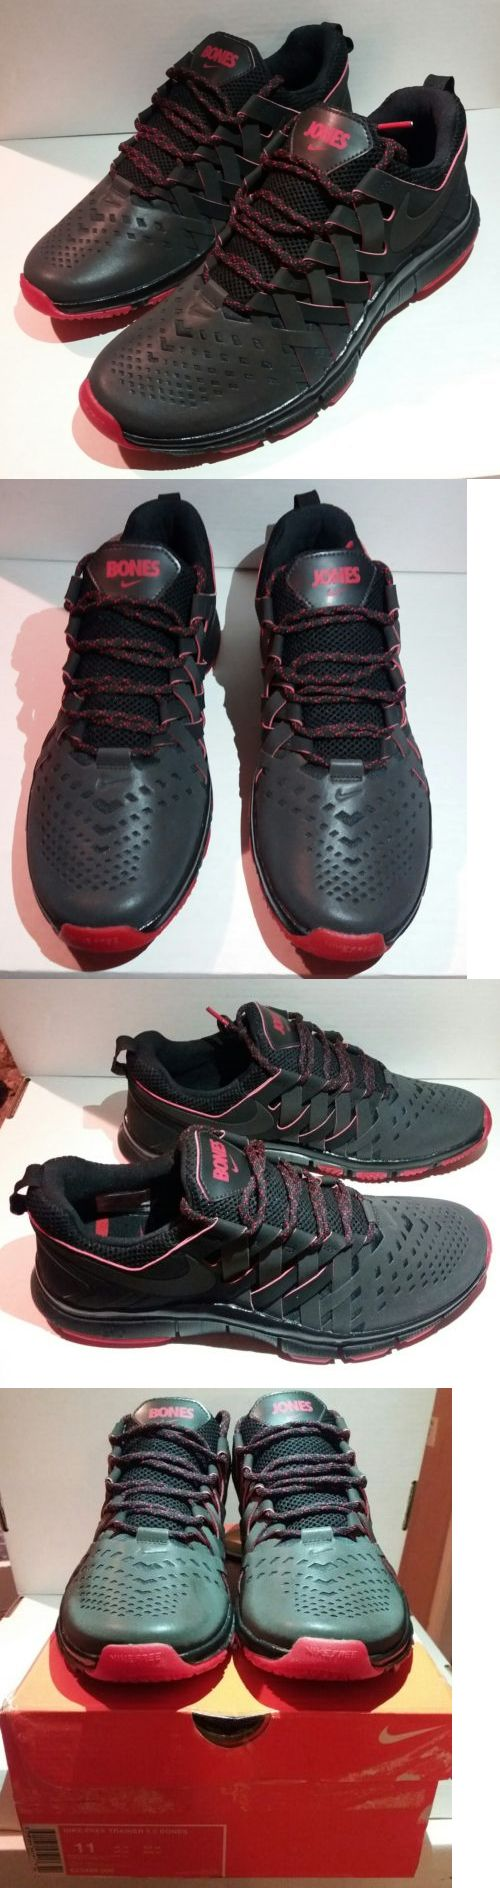 Mixed Martial Arts MMA 177913: Jon Jones ~ Nike (Free Trainer) 5.0 **Bones** First Edition! Limited! Size 11 -> BUY IT NOW ONLY: $299.99 on eBay!